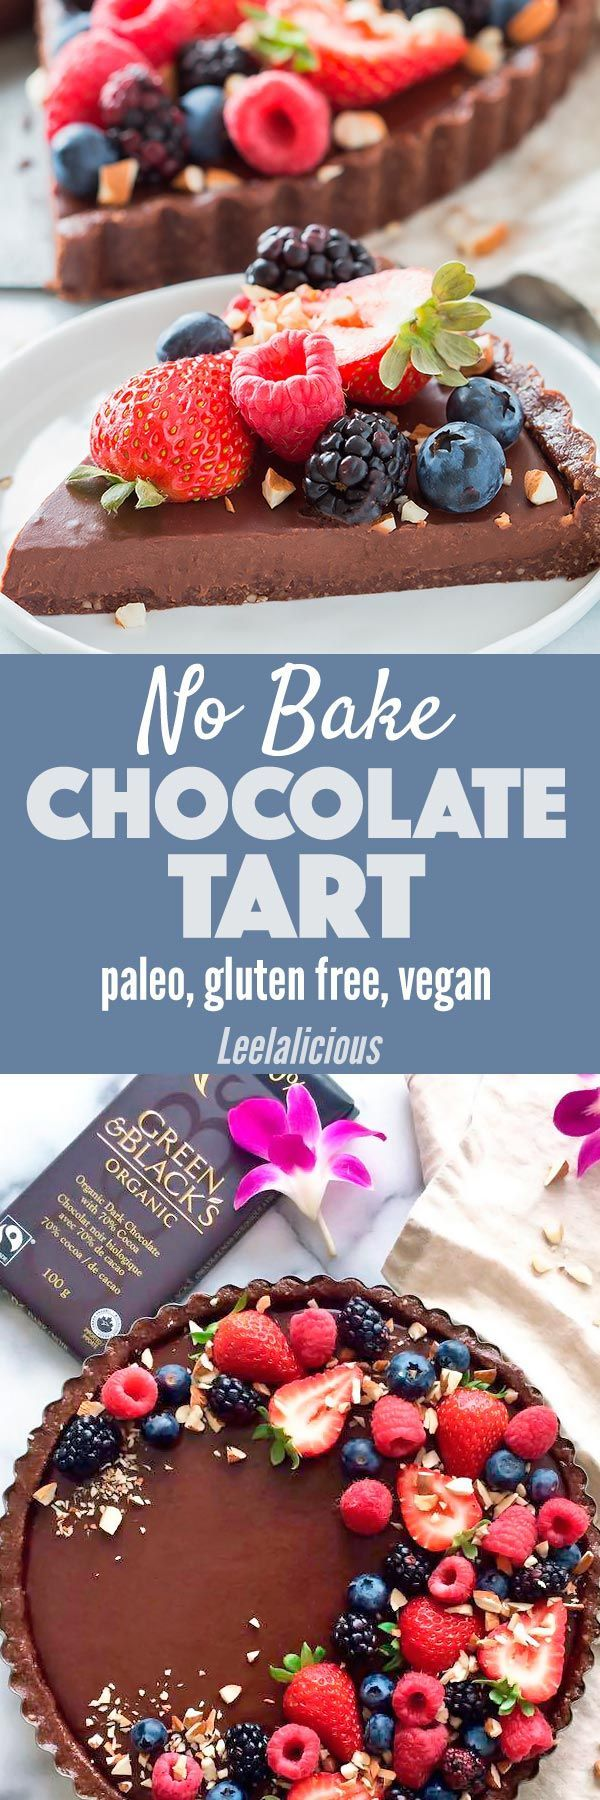 This luscious No Bake Chocolate Tart is vegan, gluten free, and paleo friendly. It makes a perfect healthier treat that won't fail to impress! Sponsored | Green & Black's Organic | raw | dessert | healthy